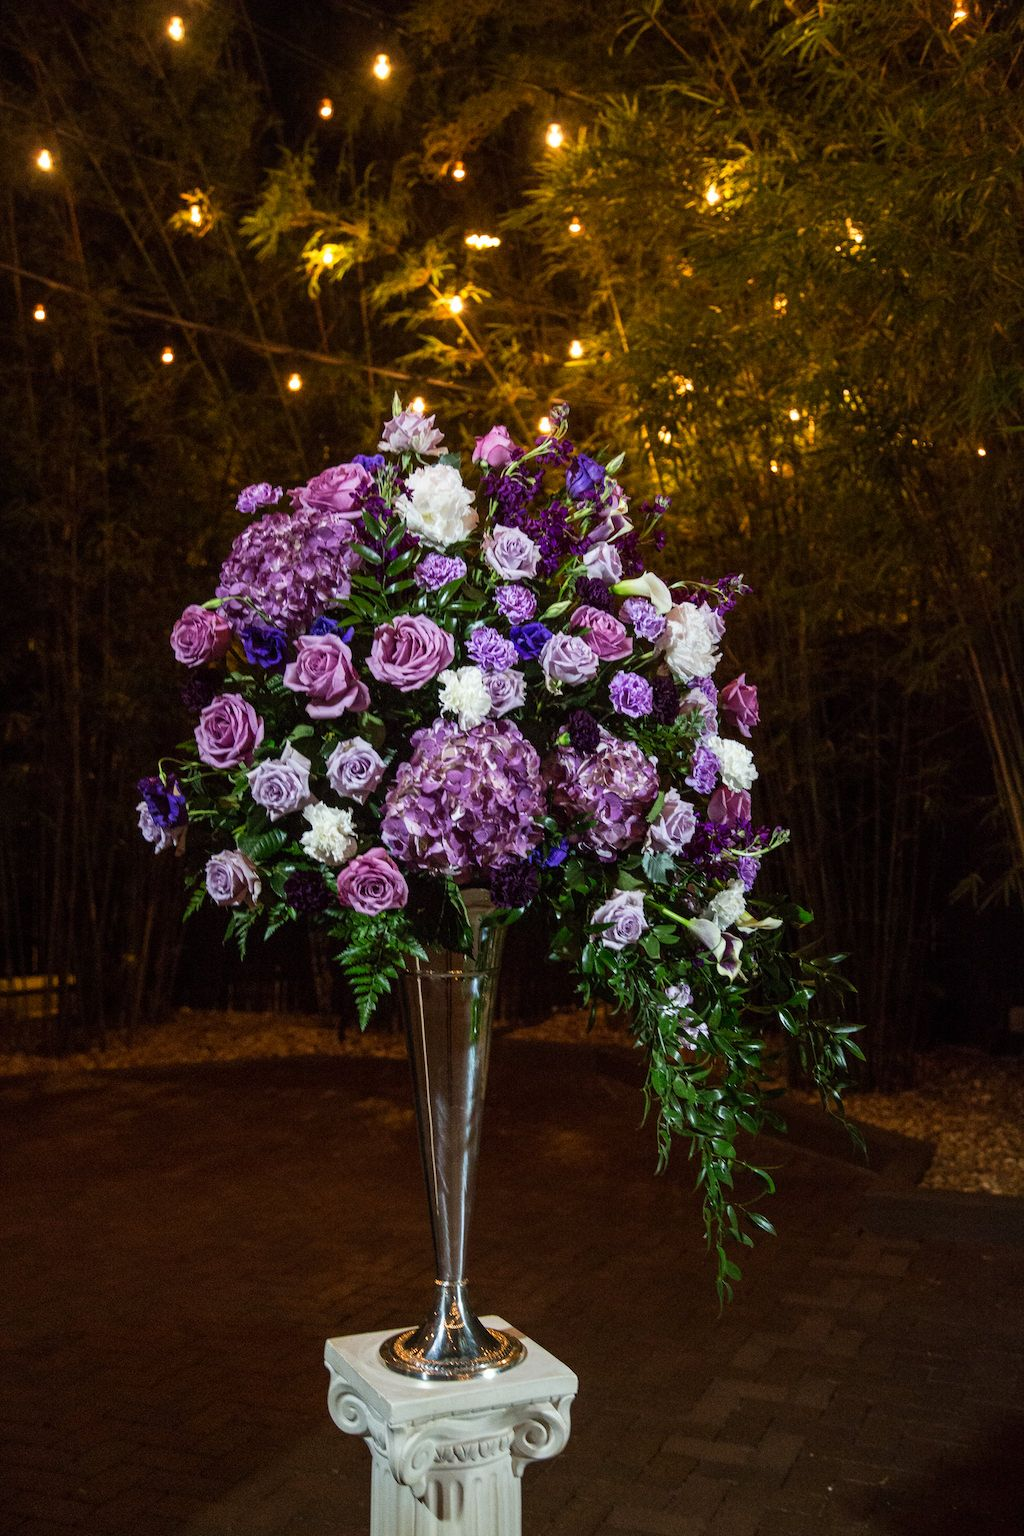 Tall Purple White and Plum Rose Wedding Flowers with Fern Greenery in Tall Silver Vase